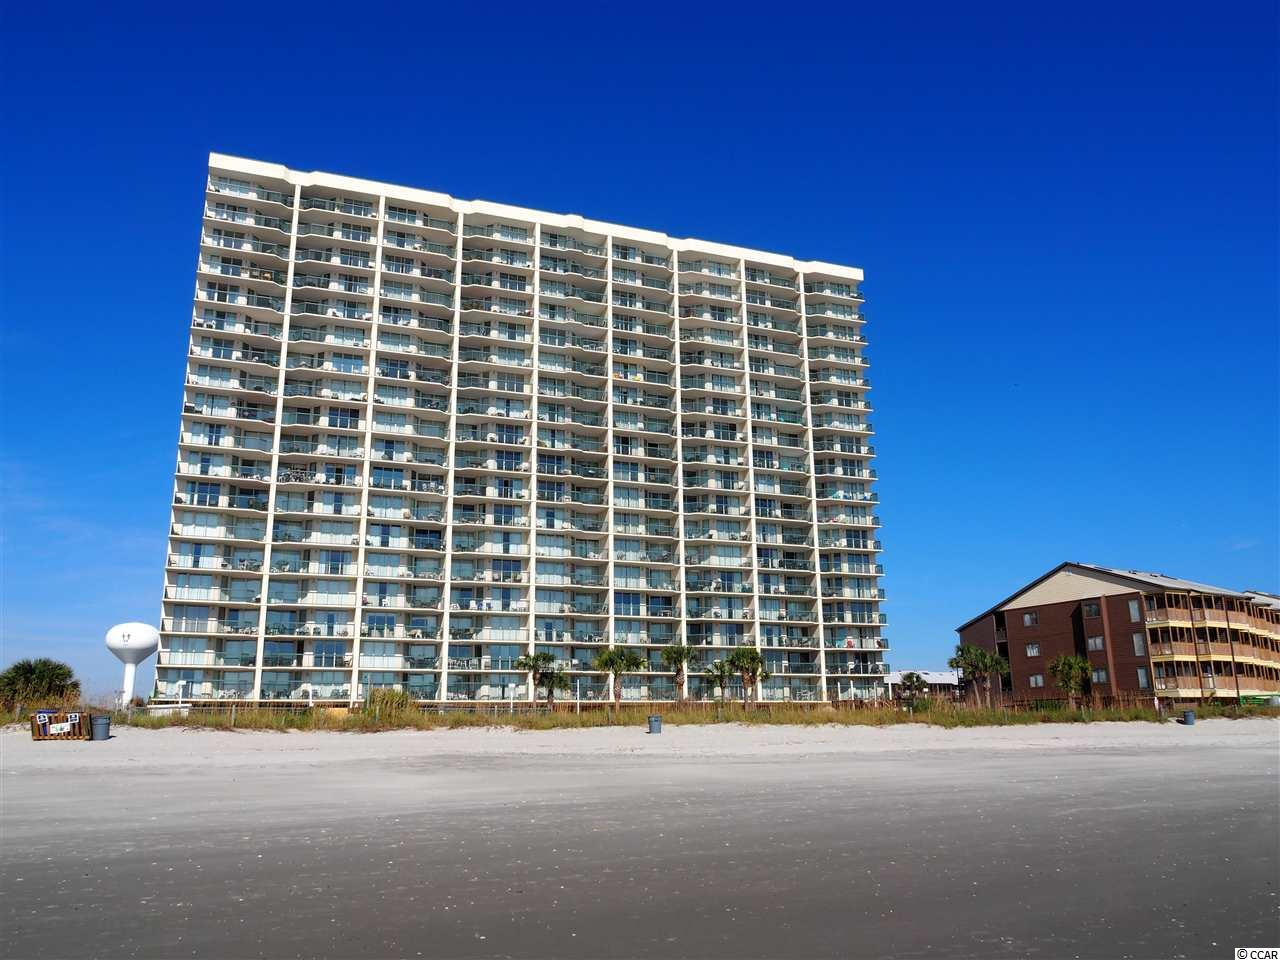 Ocean Front,Ocean View,End Unit Condo in Ashworth, The : North Myrtle Beach South Carolina